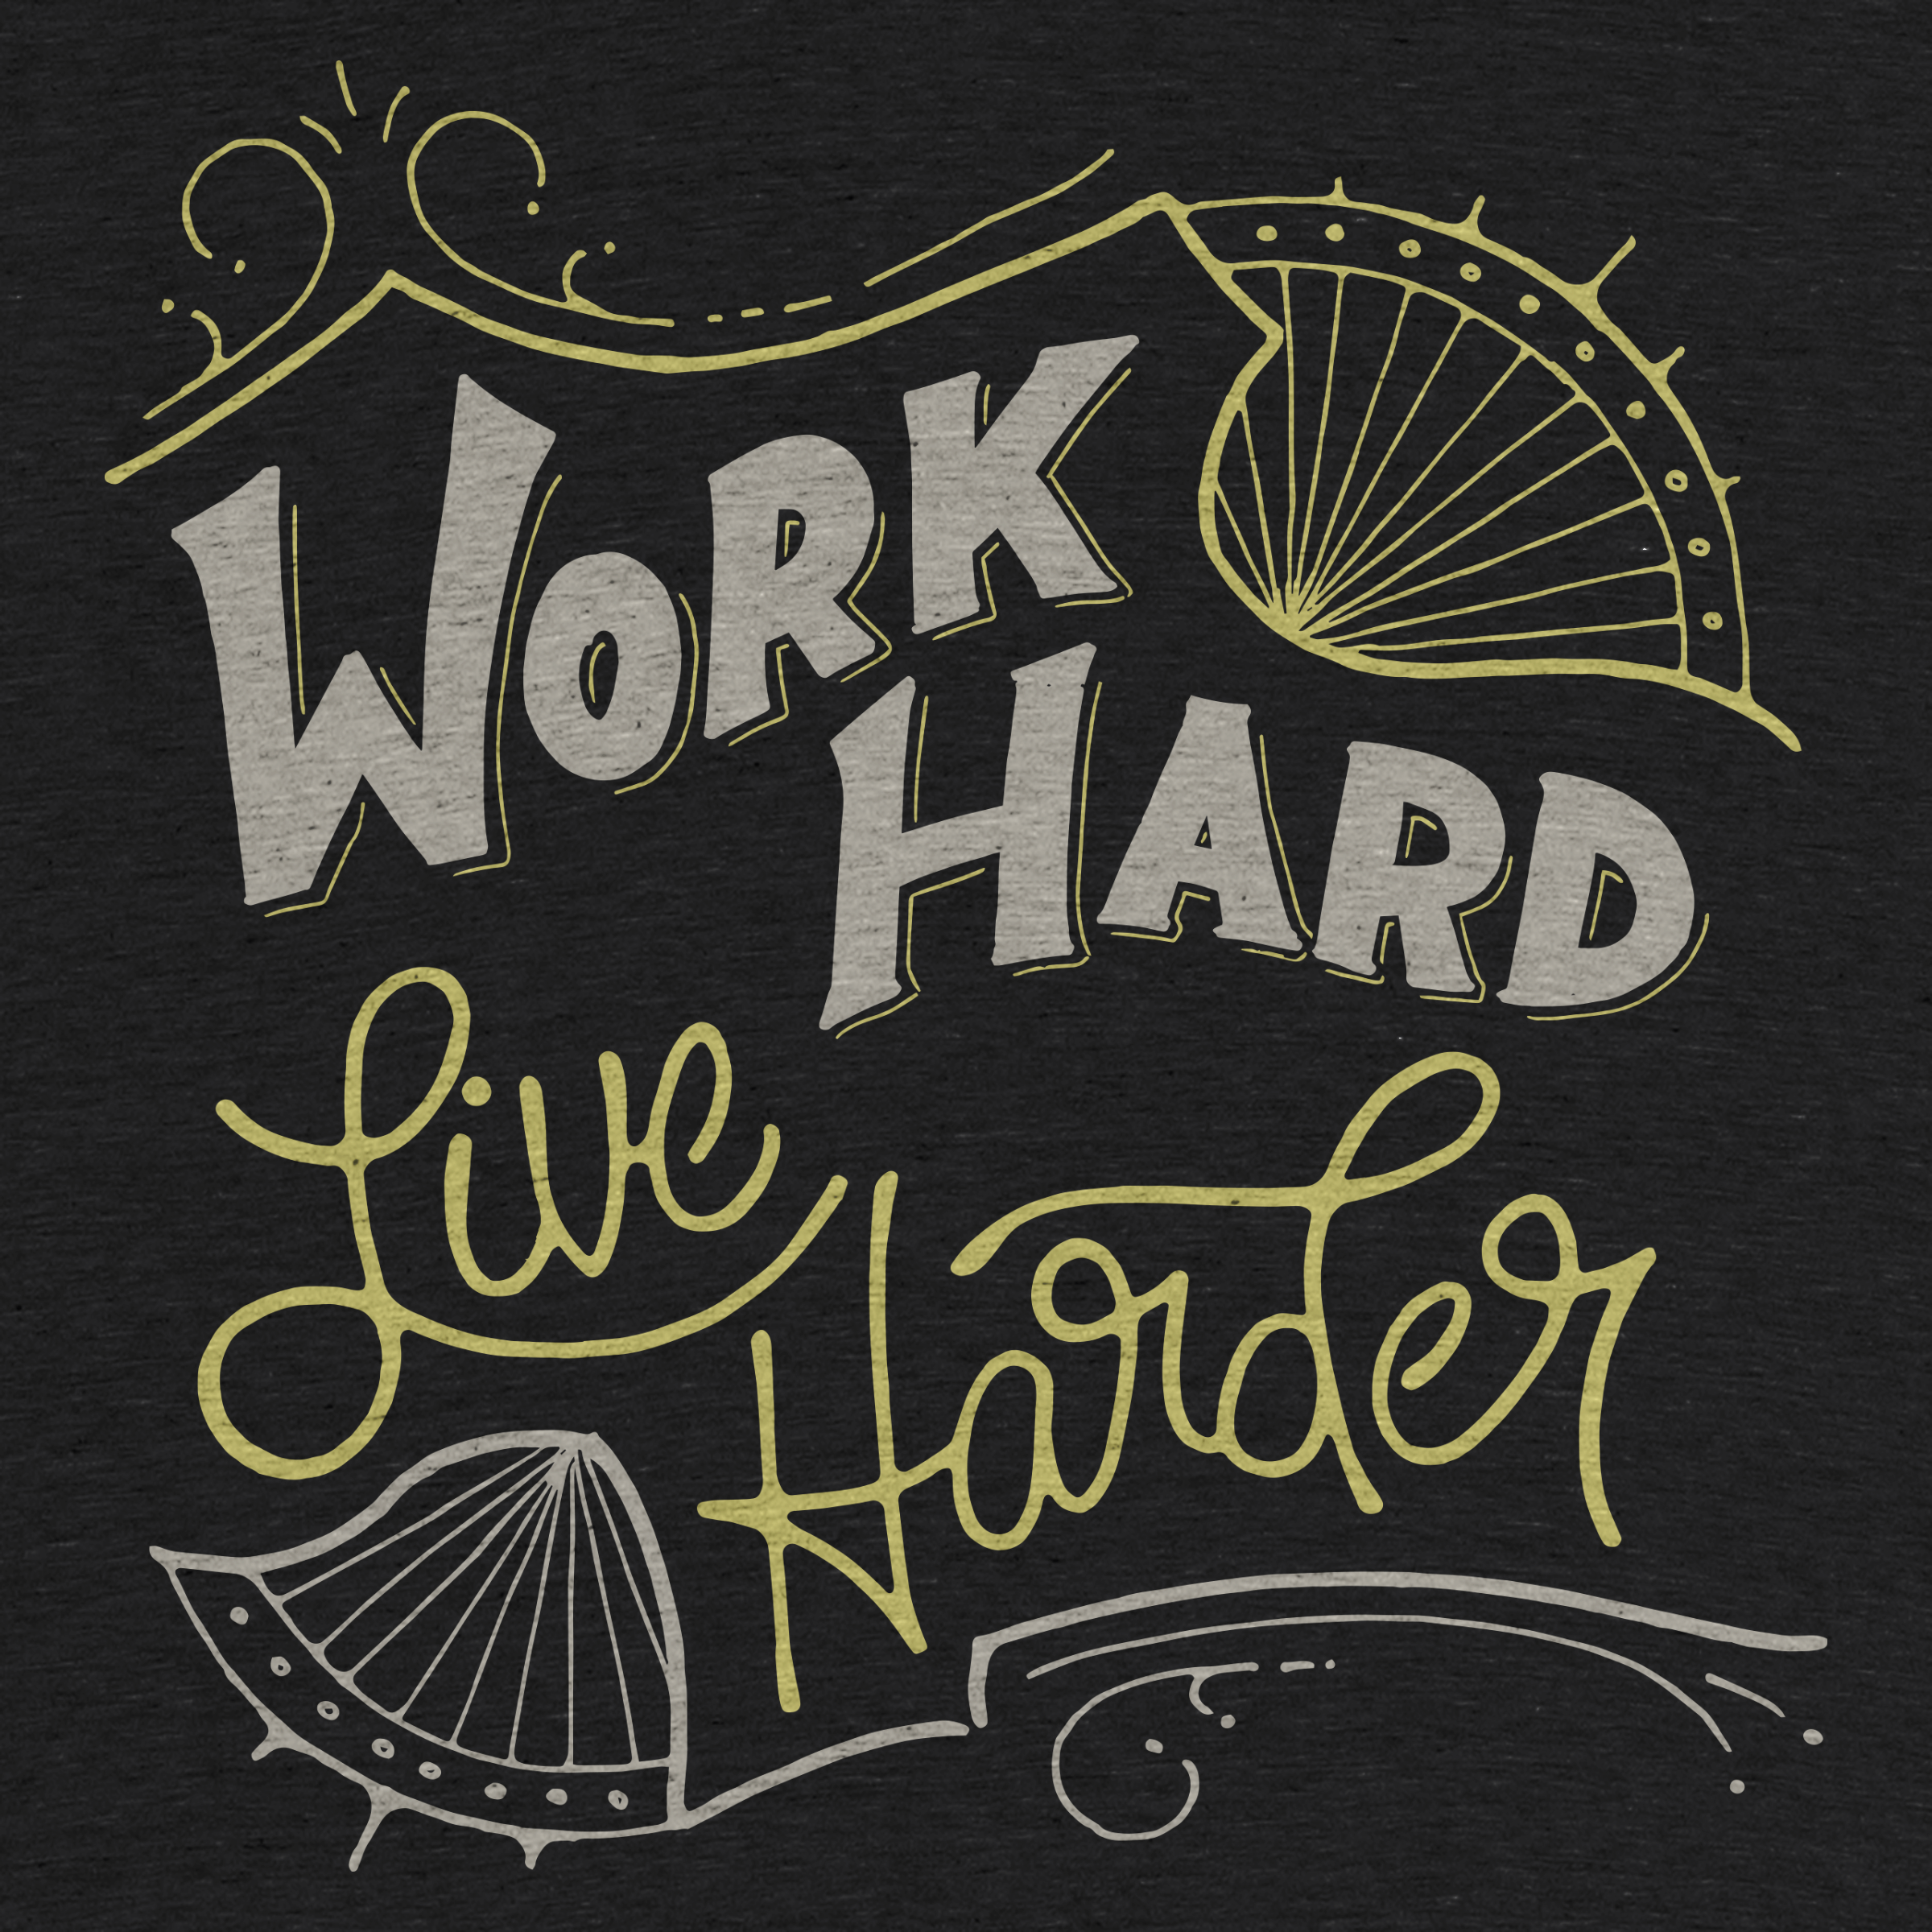 Work Hard, Live Harder!